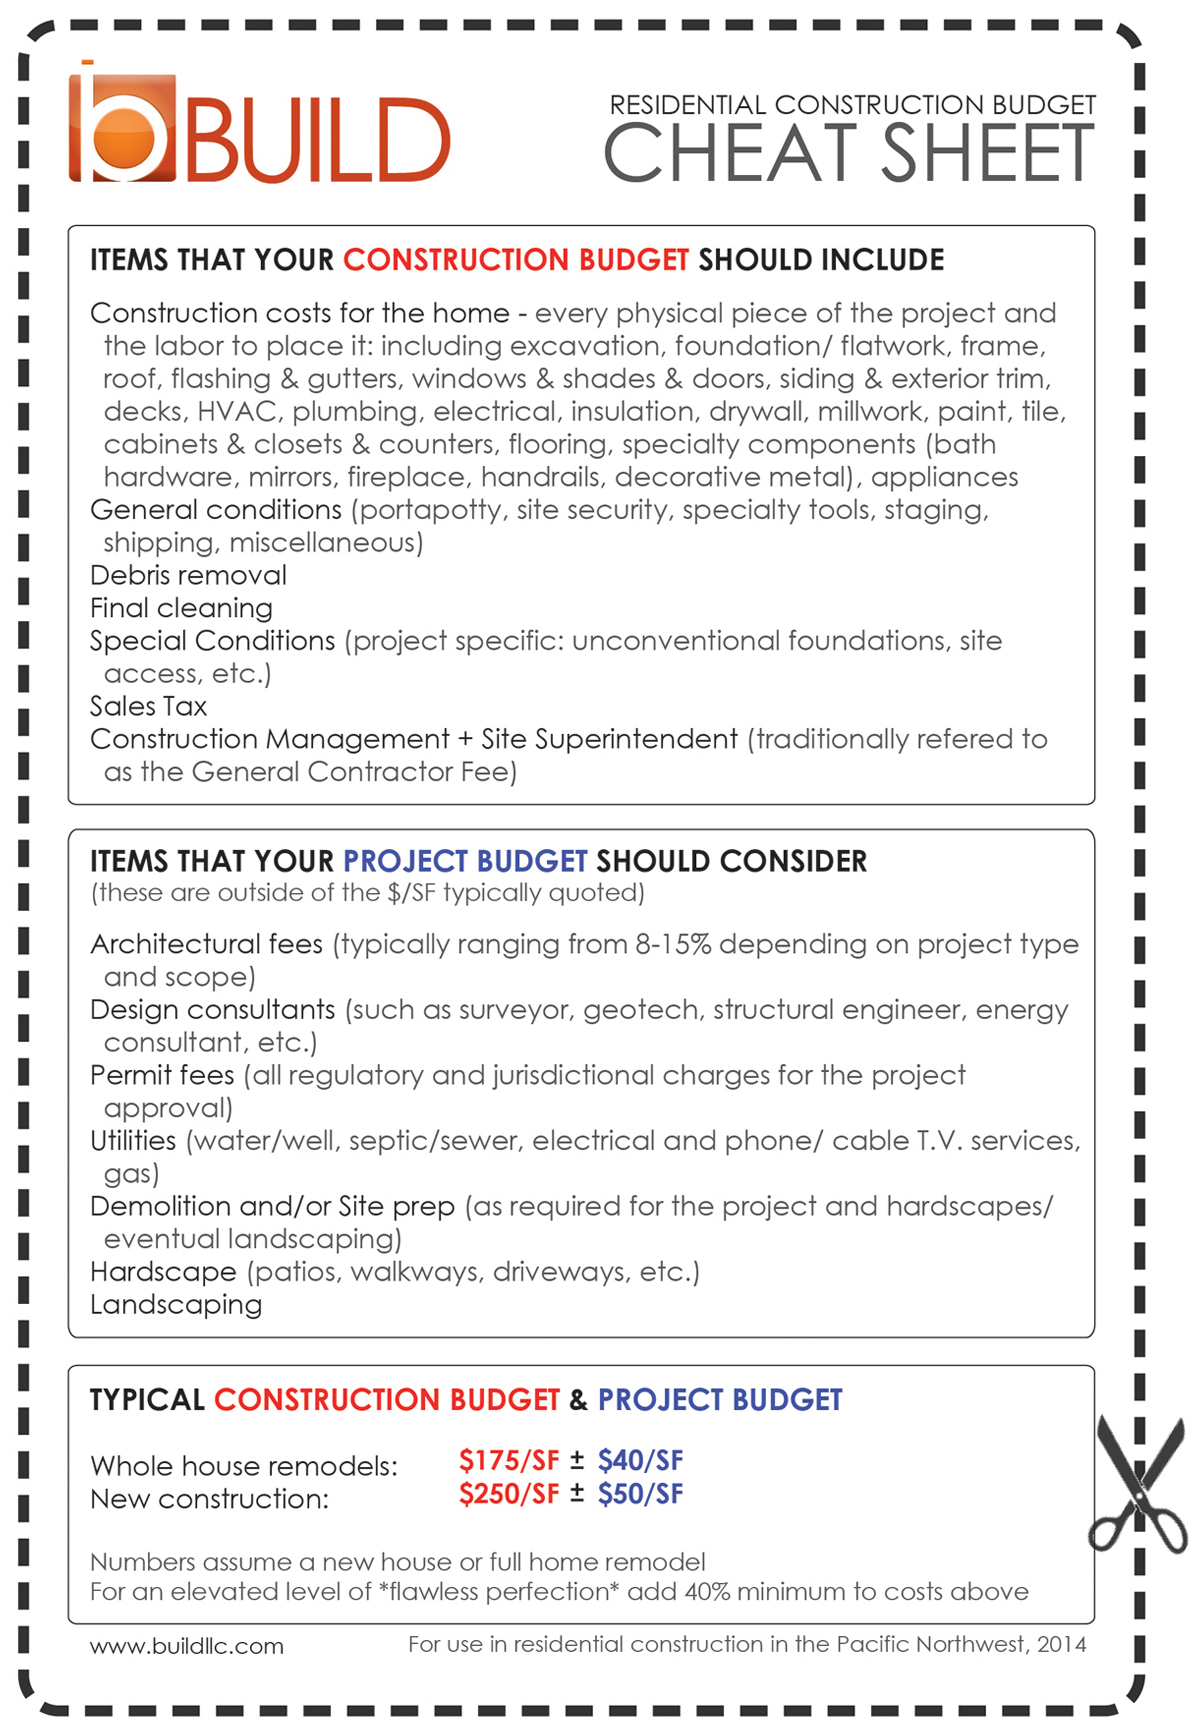 Worksheets Construction Budget Worksheet defining a construction budget the 2014 cheat sheet build blog sheet